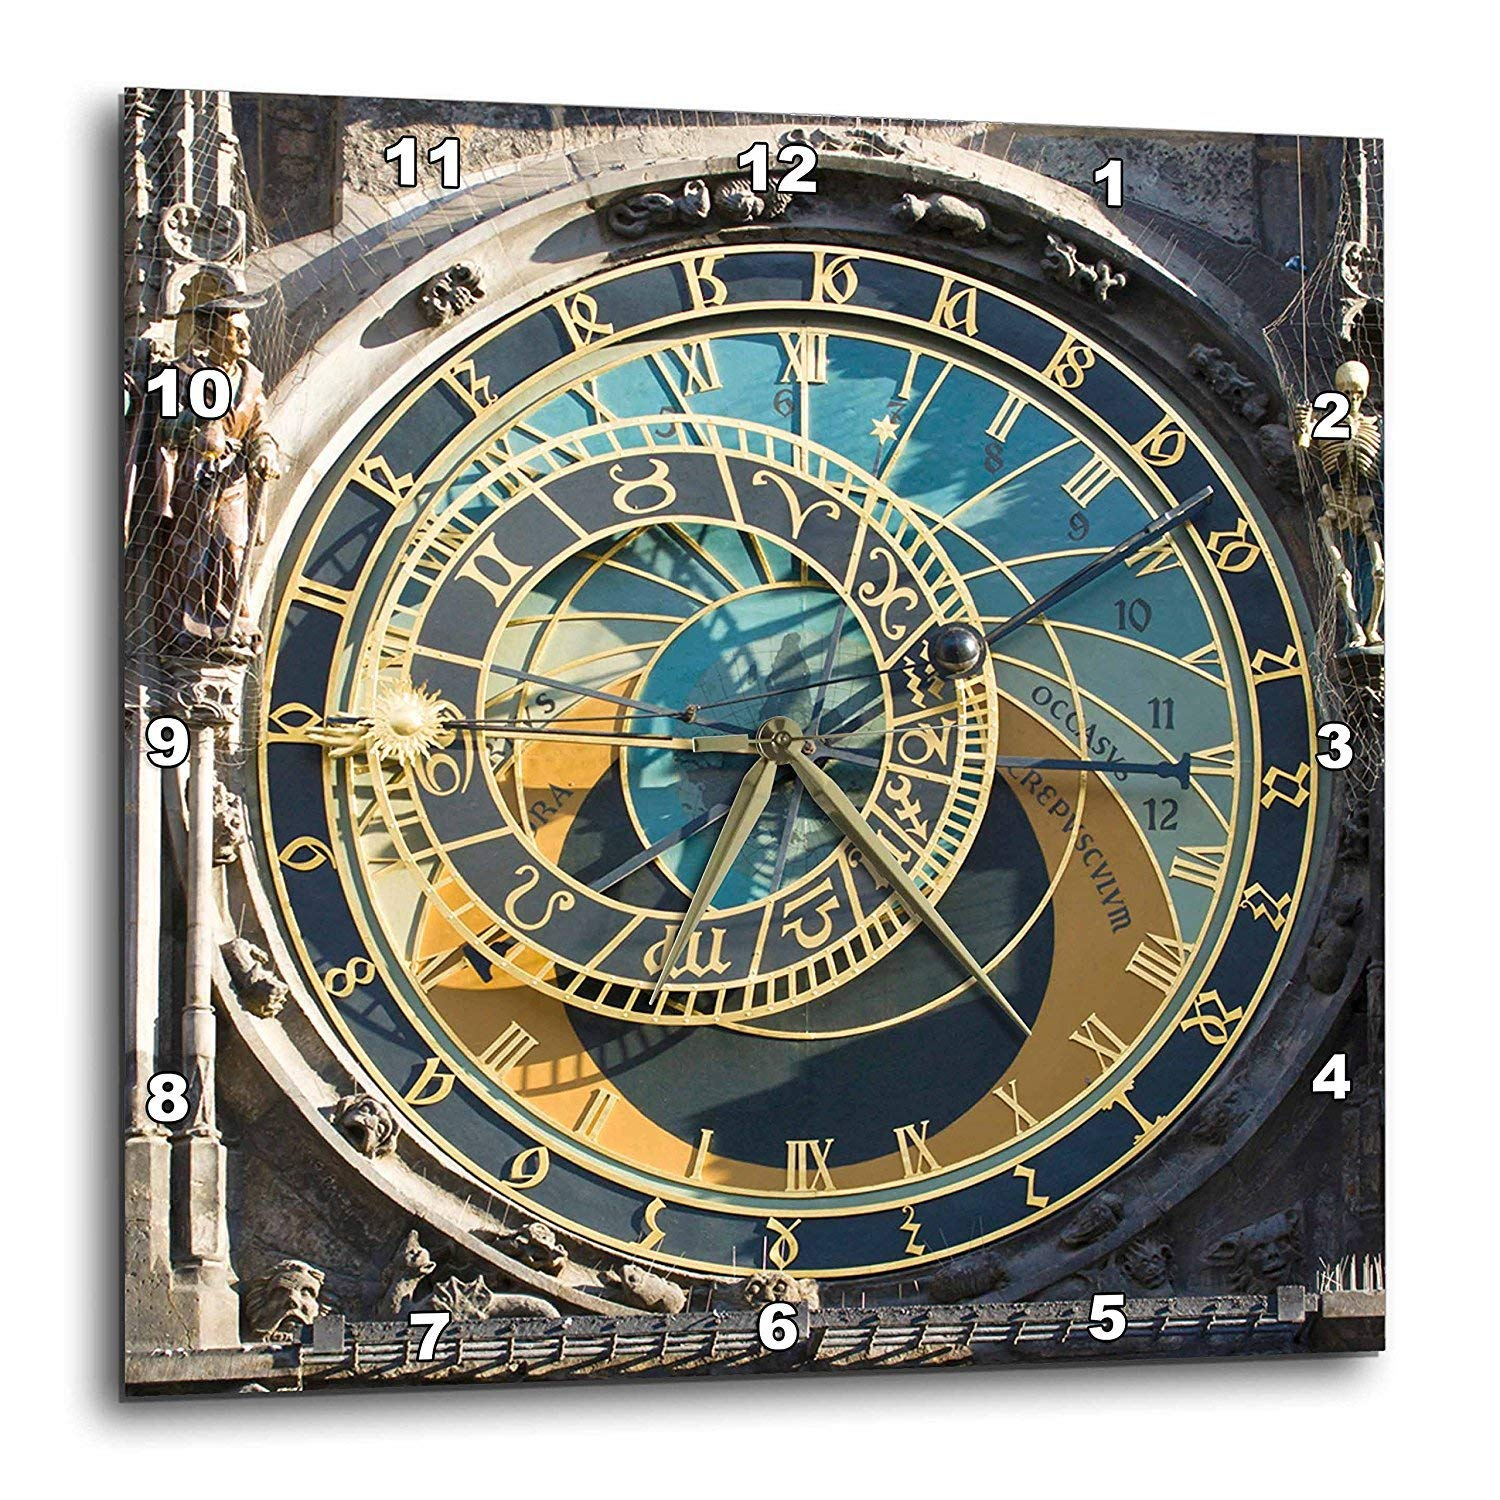 Amazon.com: 3dRose Danita Delimont - Clock Towers - Astronomical Clock, Orloj, Prague, Czech Republic - EU06 THA0021 - Tom Haseltine - 15x15 Wall Clock ...